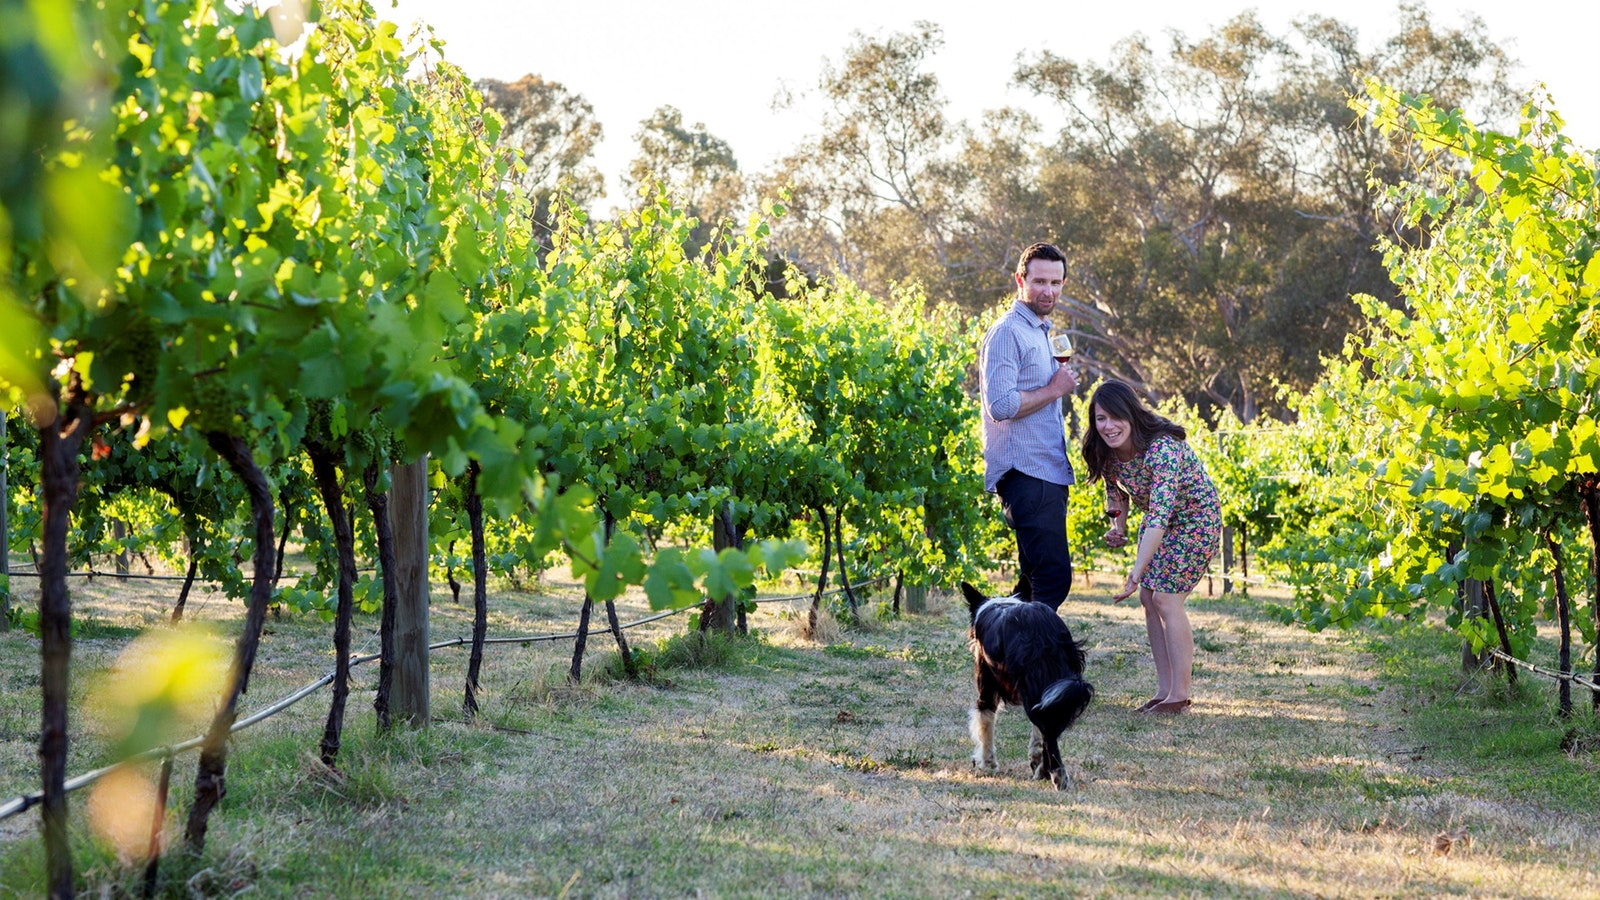 Luke Lou and dog in the vines